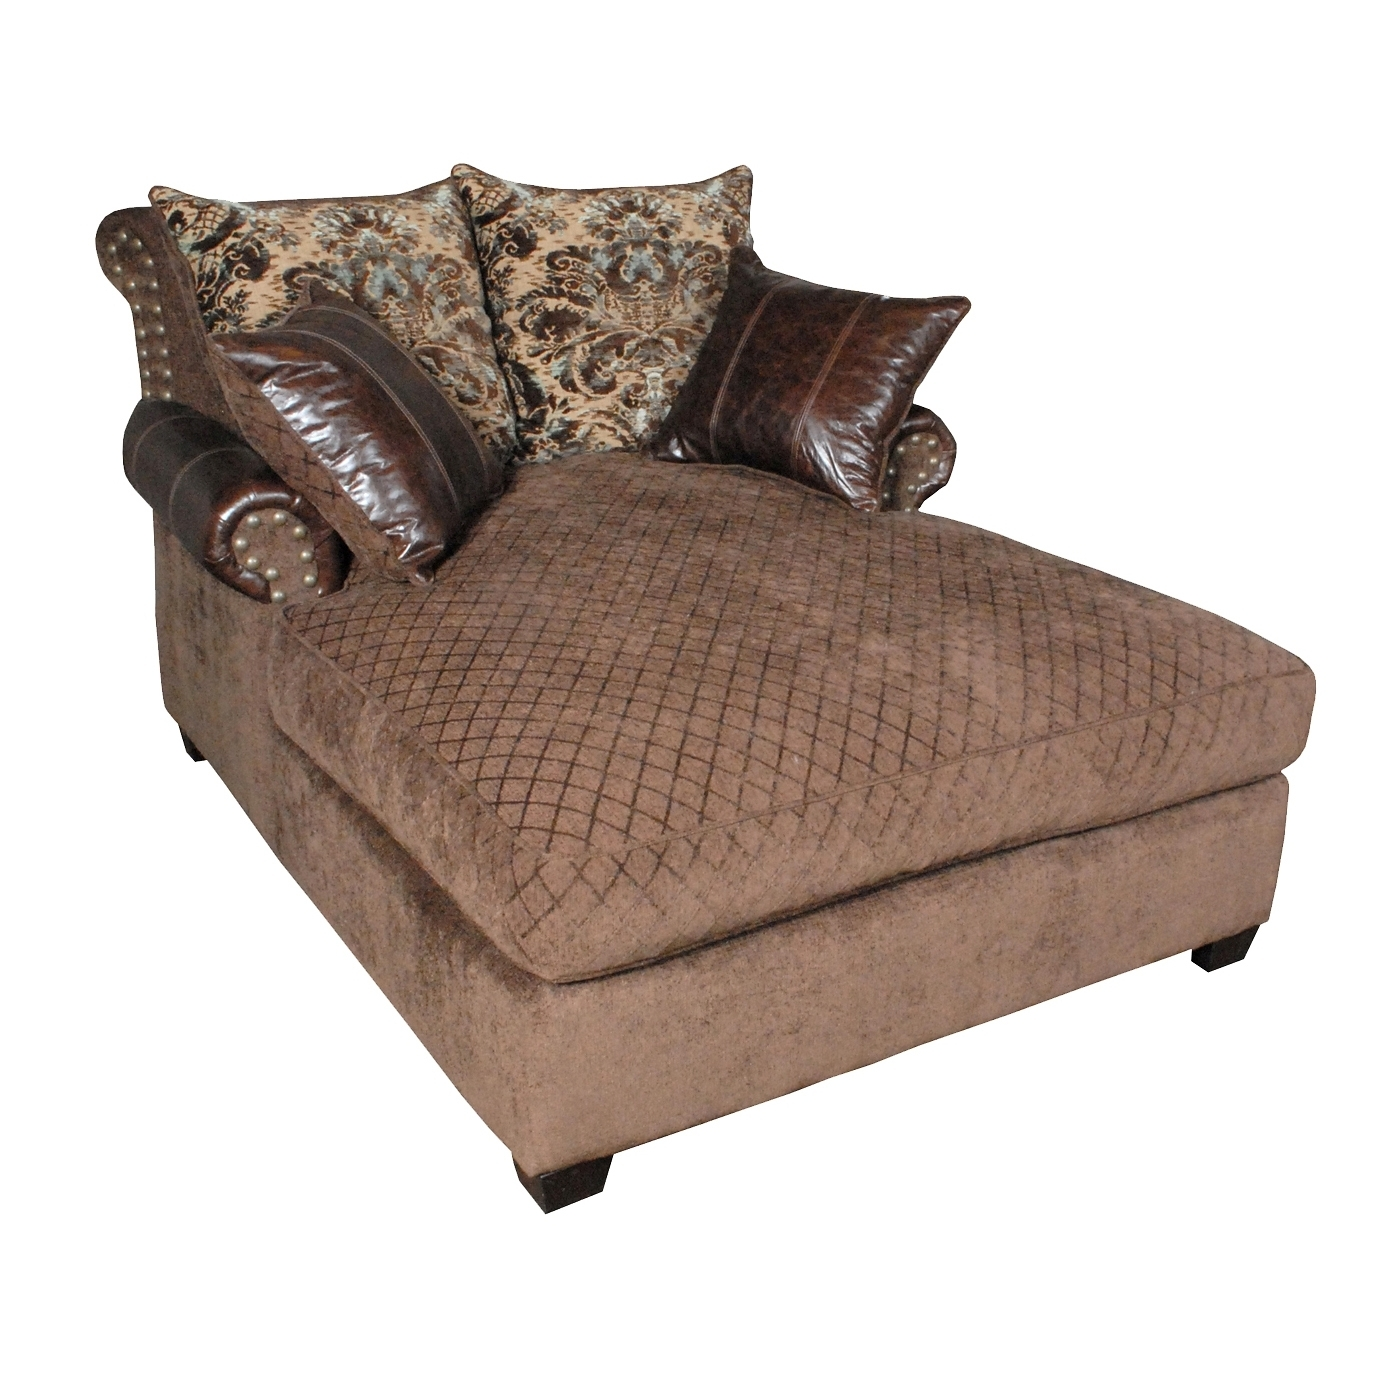 Fashionable Large Chaise Lounges With Regard To Oversized Chaise Lounge – Decofurnish (View 5 of 15)